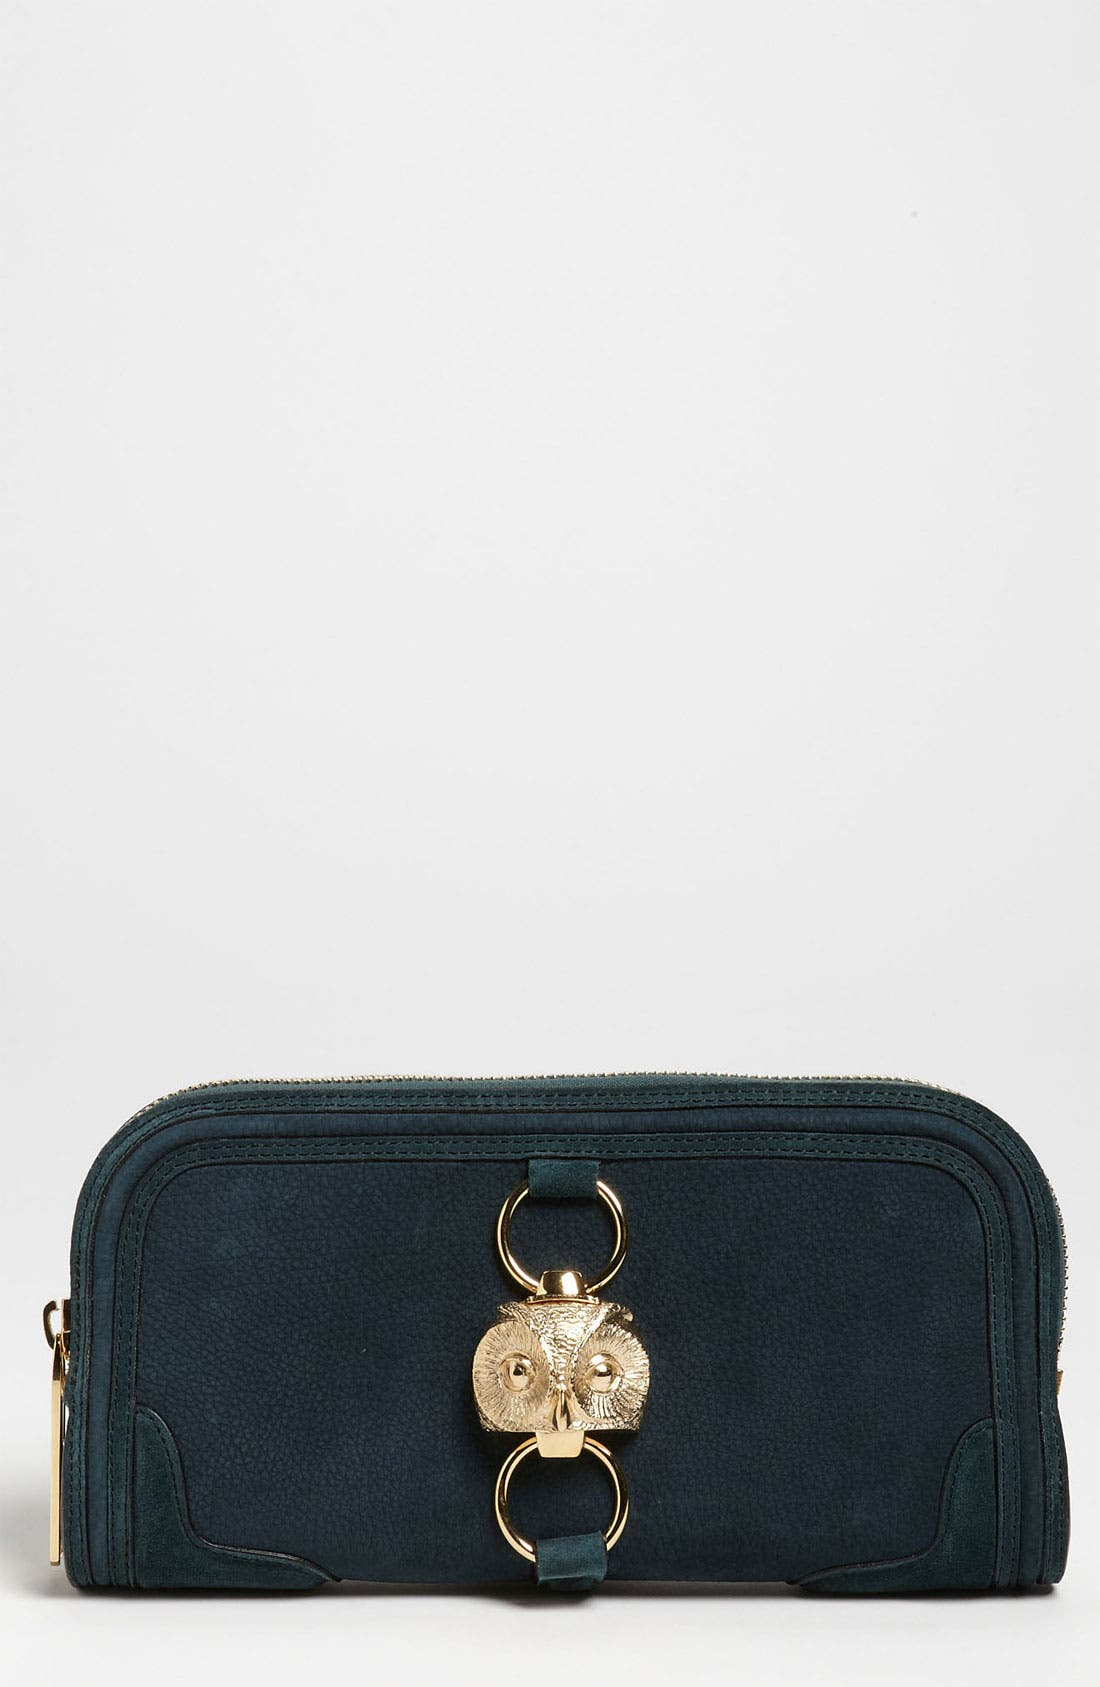 Main Image - Burberry Prorsum Nubuck Leather Clutch